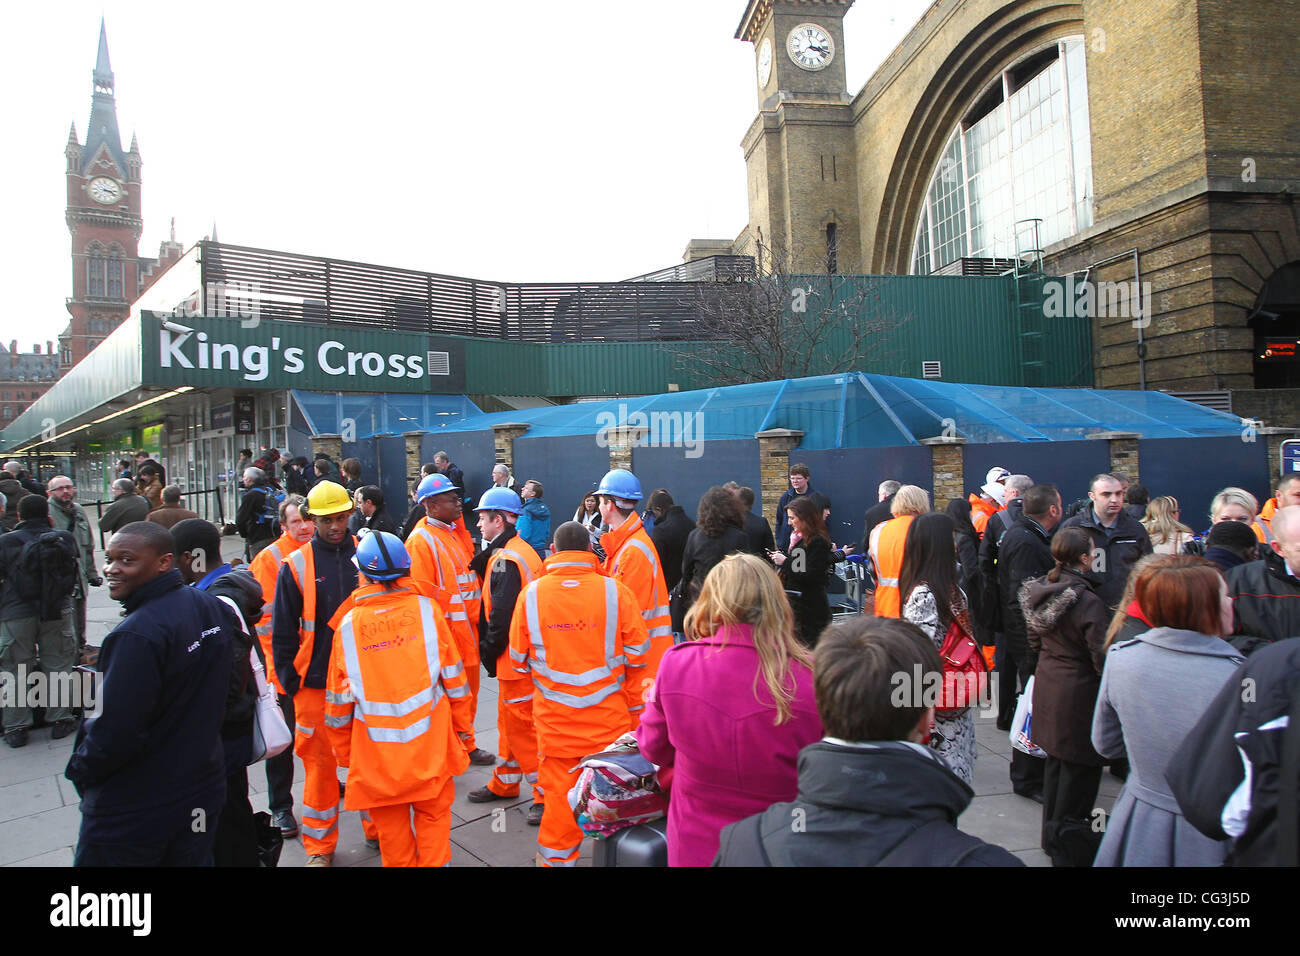 King's Cross station is evacuated after a security alert at around 3pm GMT on 10 Jan 2010 London, England - - Stock Image